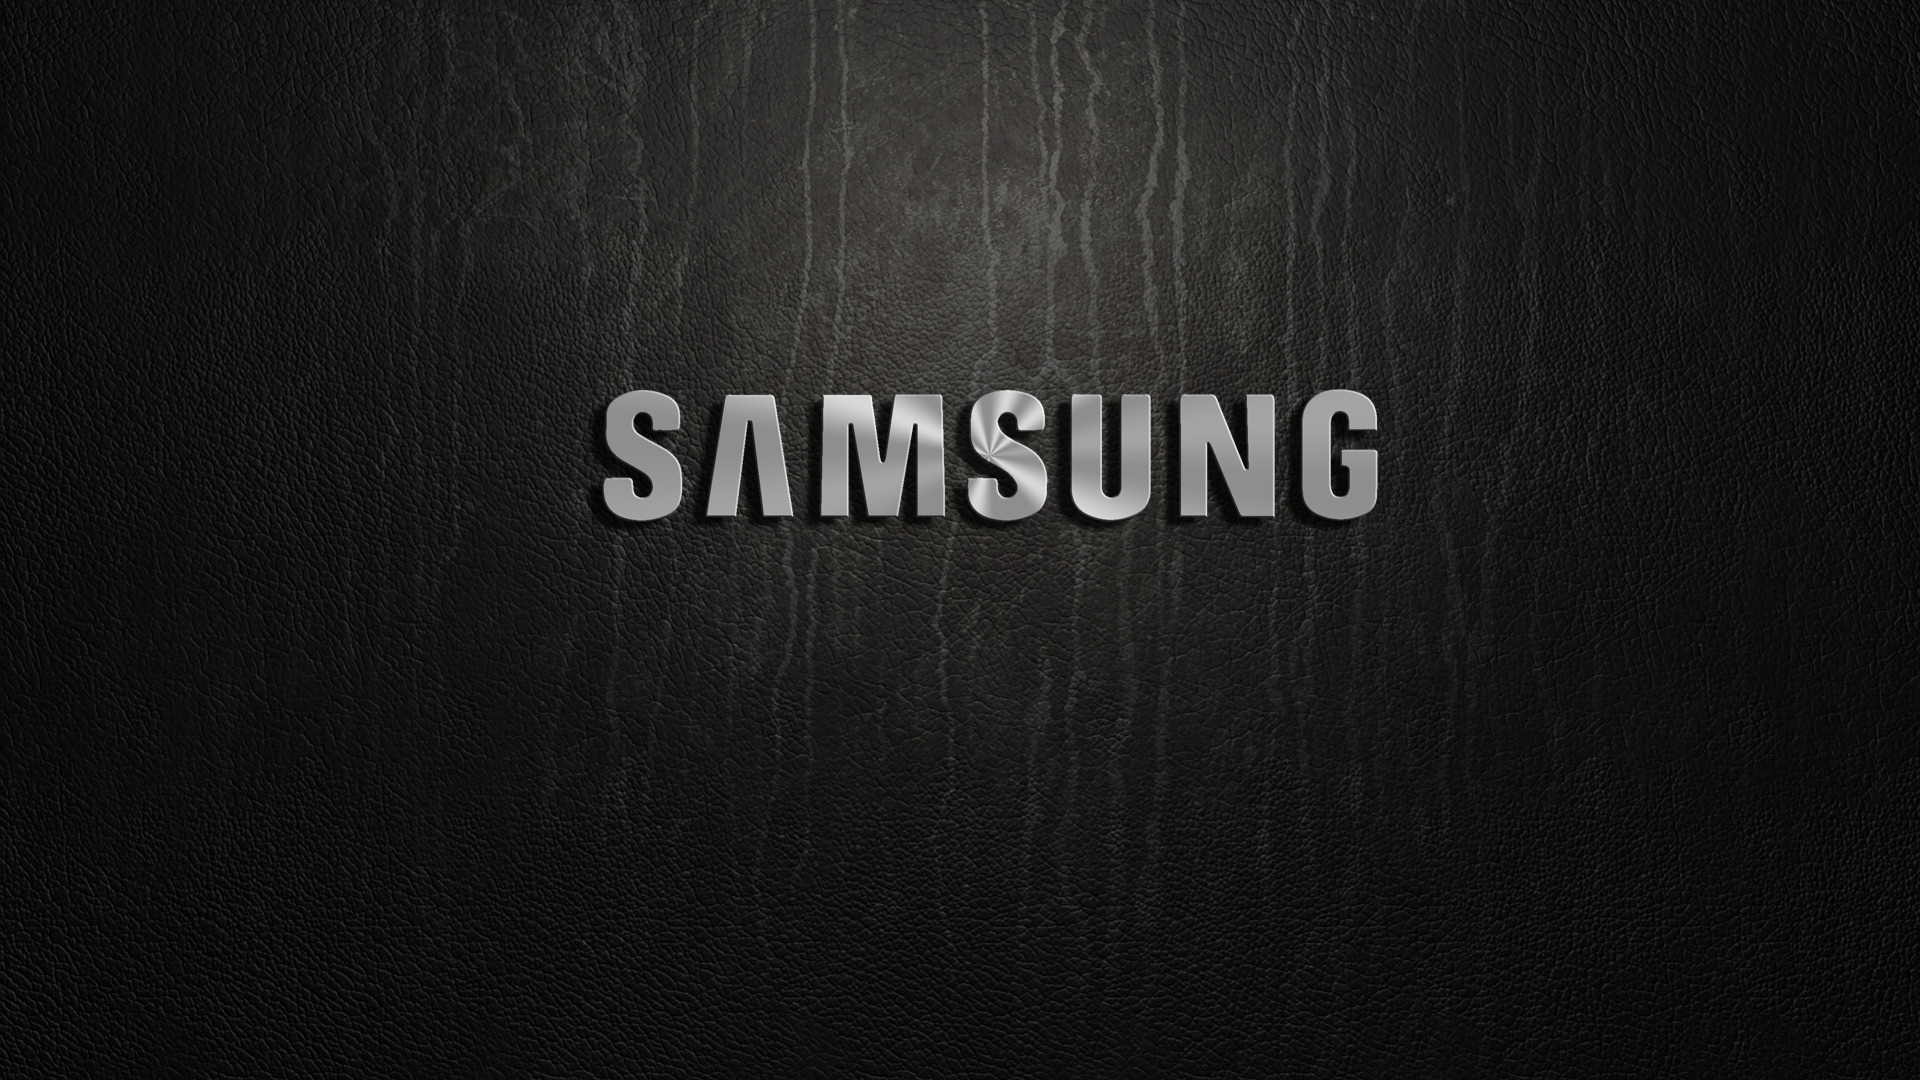 Samsung Wallpaper Hd Group: Samsung Papel De Parede HD